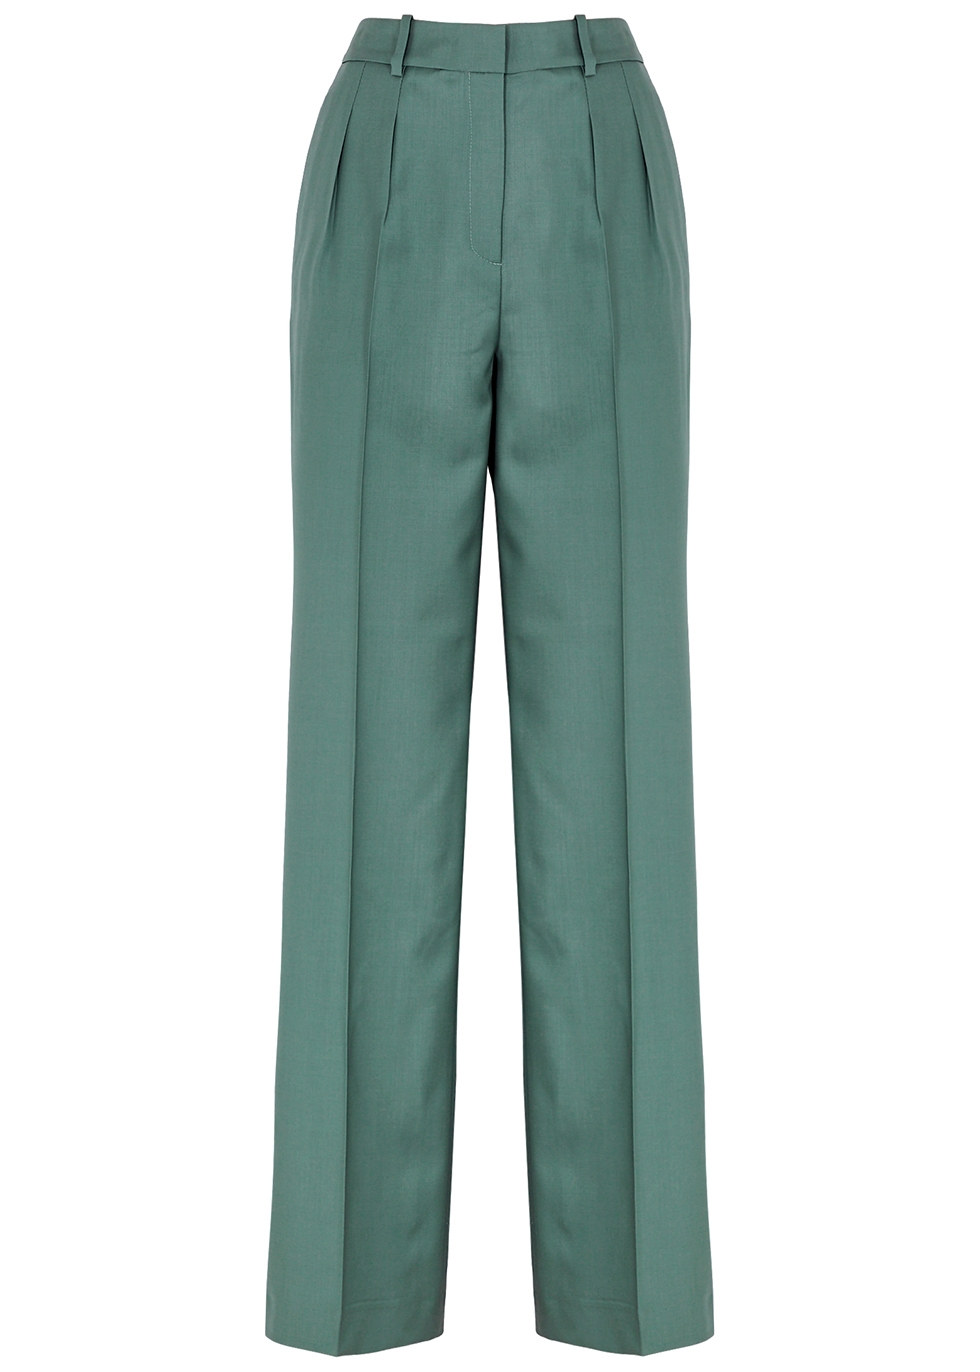 Sbiru dark green wool trousers